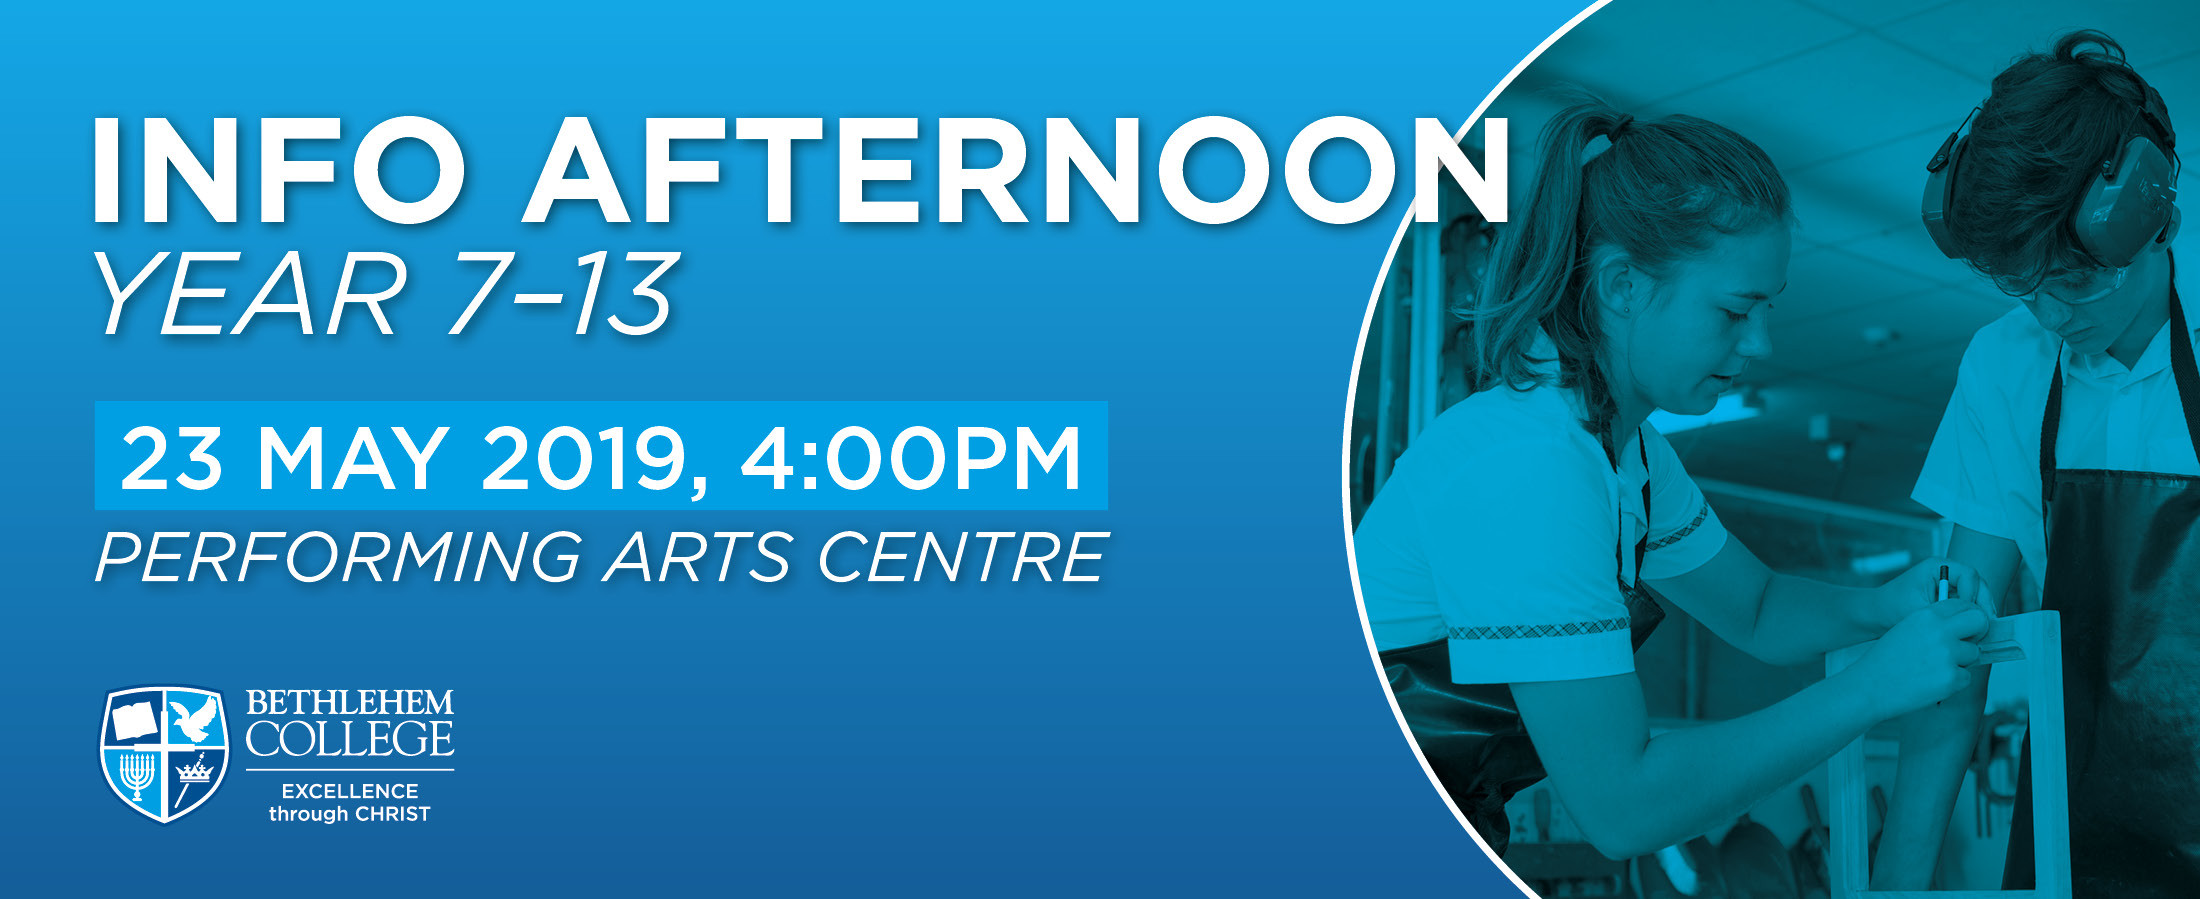 Info Afternoon Year 7-13